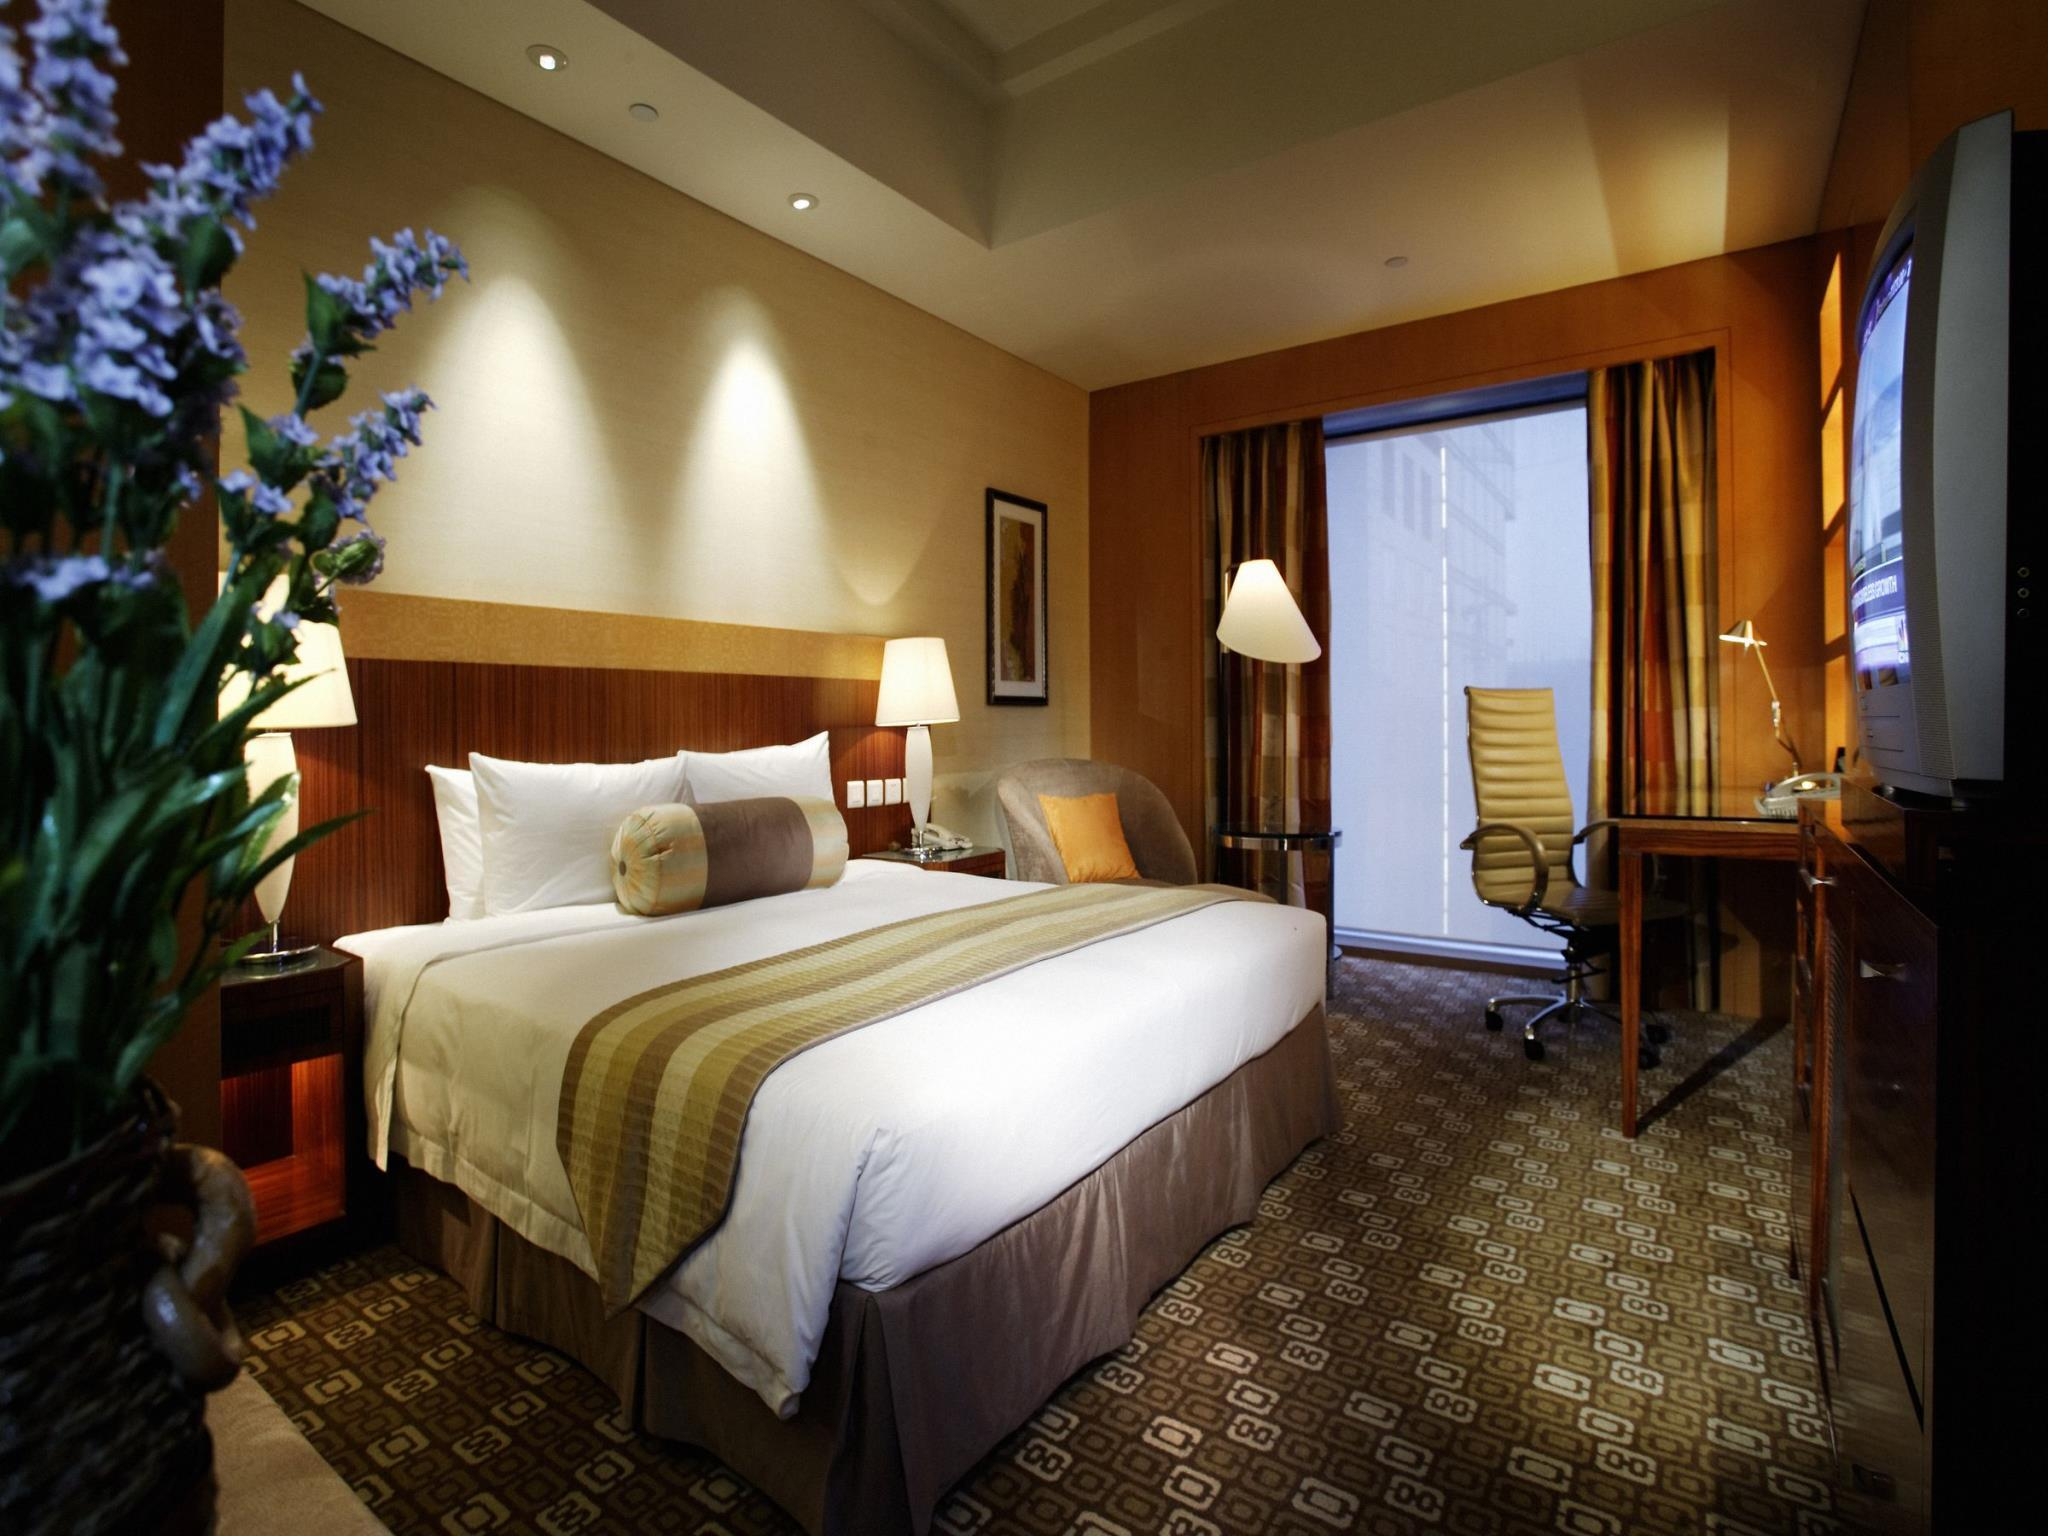 Family Suite (1 Double Room and 1 Twin-Beds Room)